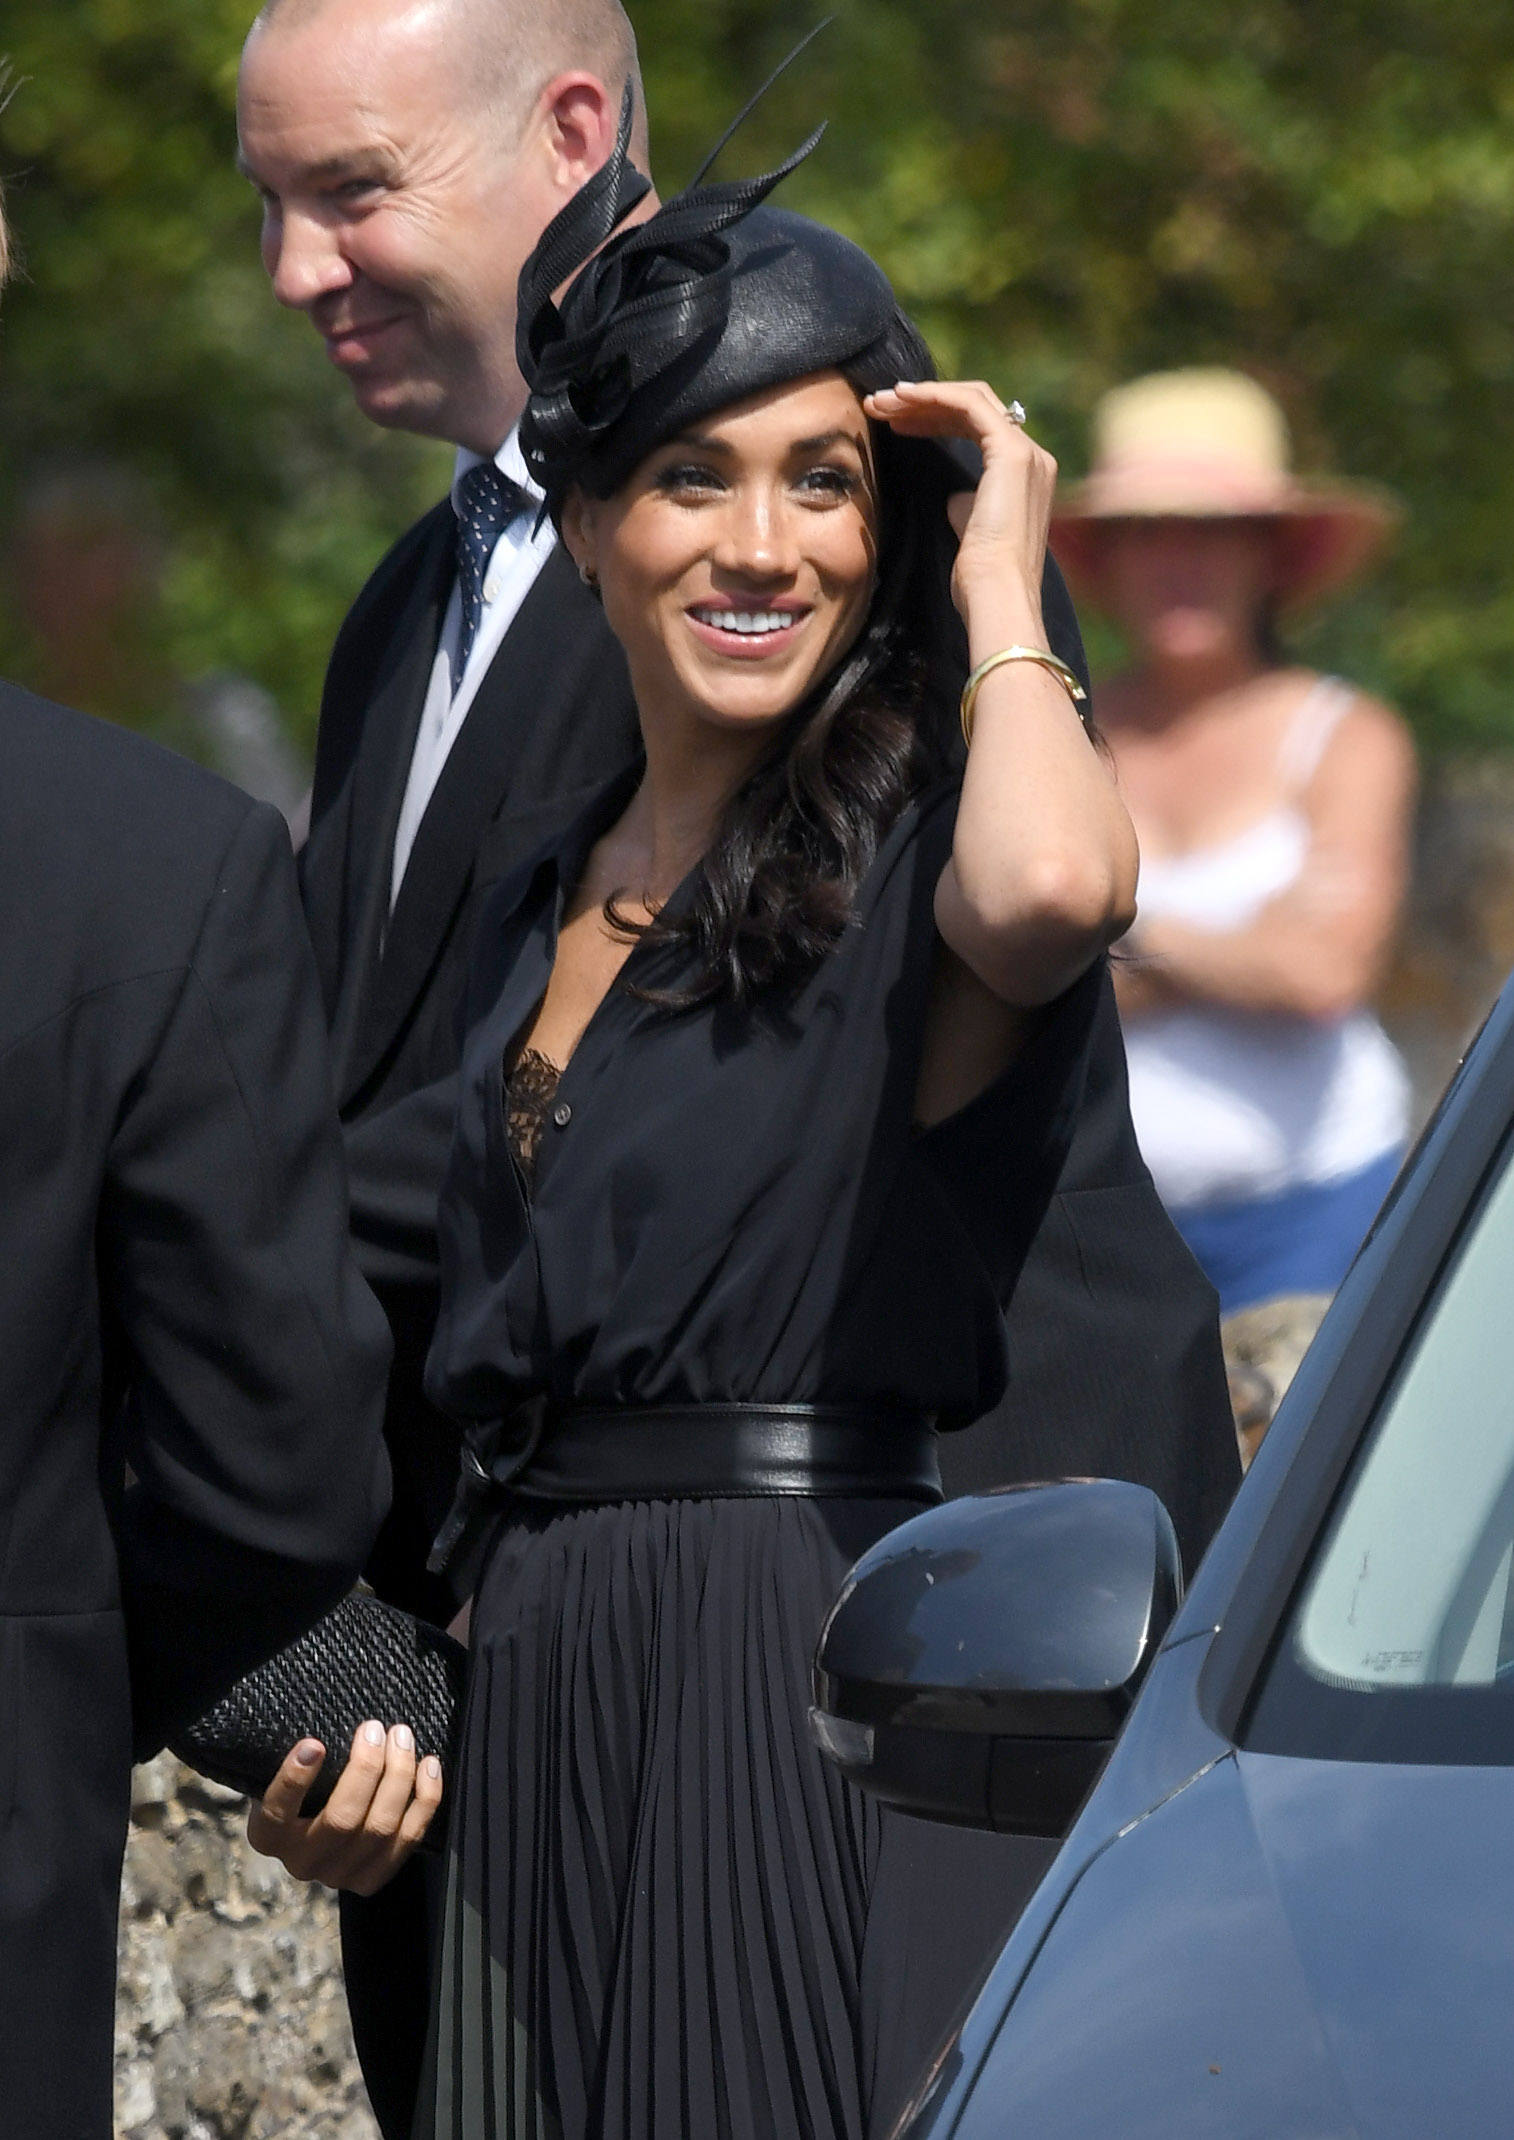 Meghan, Duchess of Sussex attends the wedding of Daisy Jenks and Charlie Van Straubenzee at Saint Mary The Virgin Church on August 4, 2018 in Frensham, United Kingdom. Prince Harry attended the same prep school as Charlie van Straubenzee and have been goo